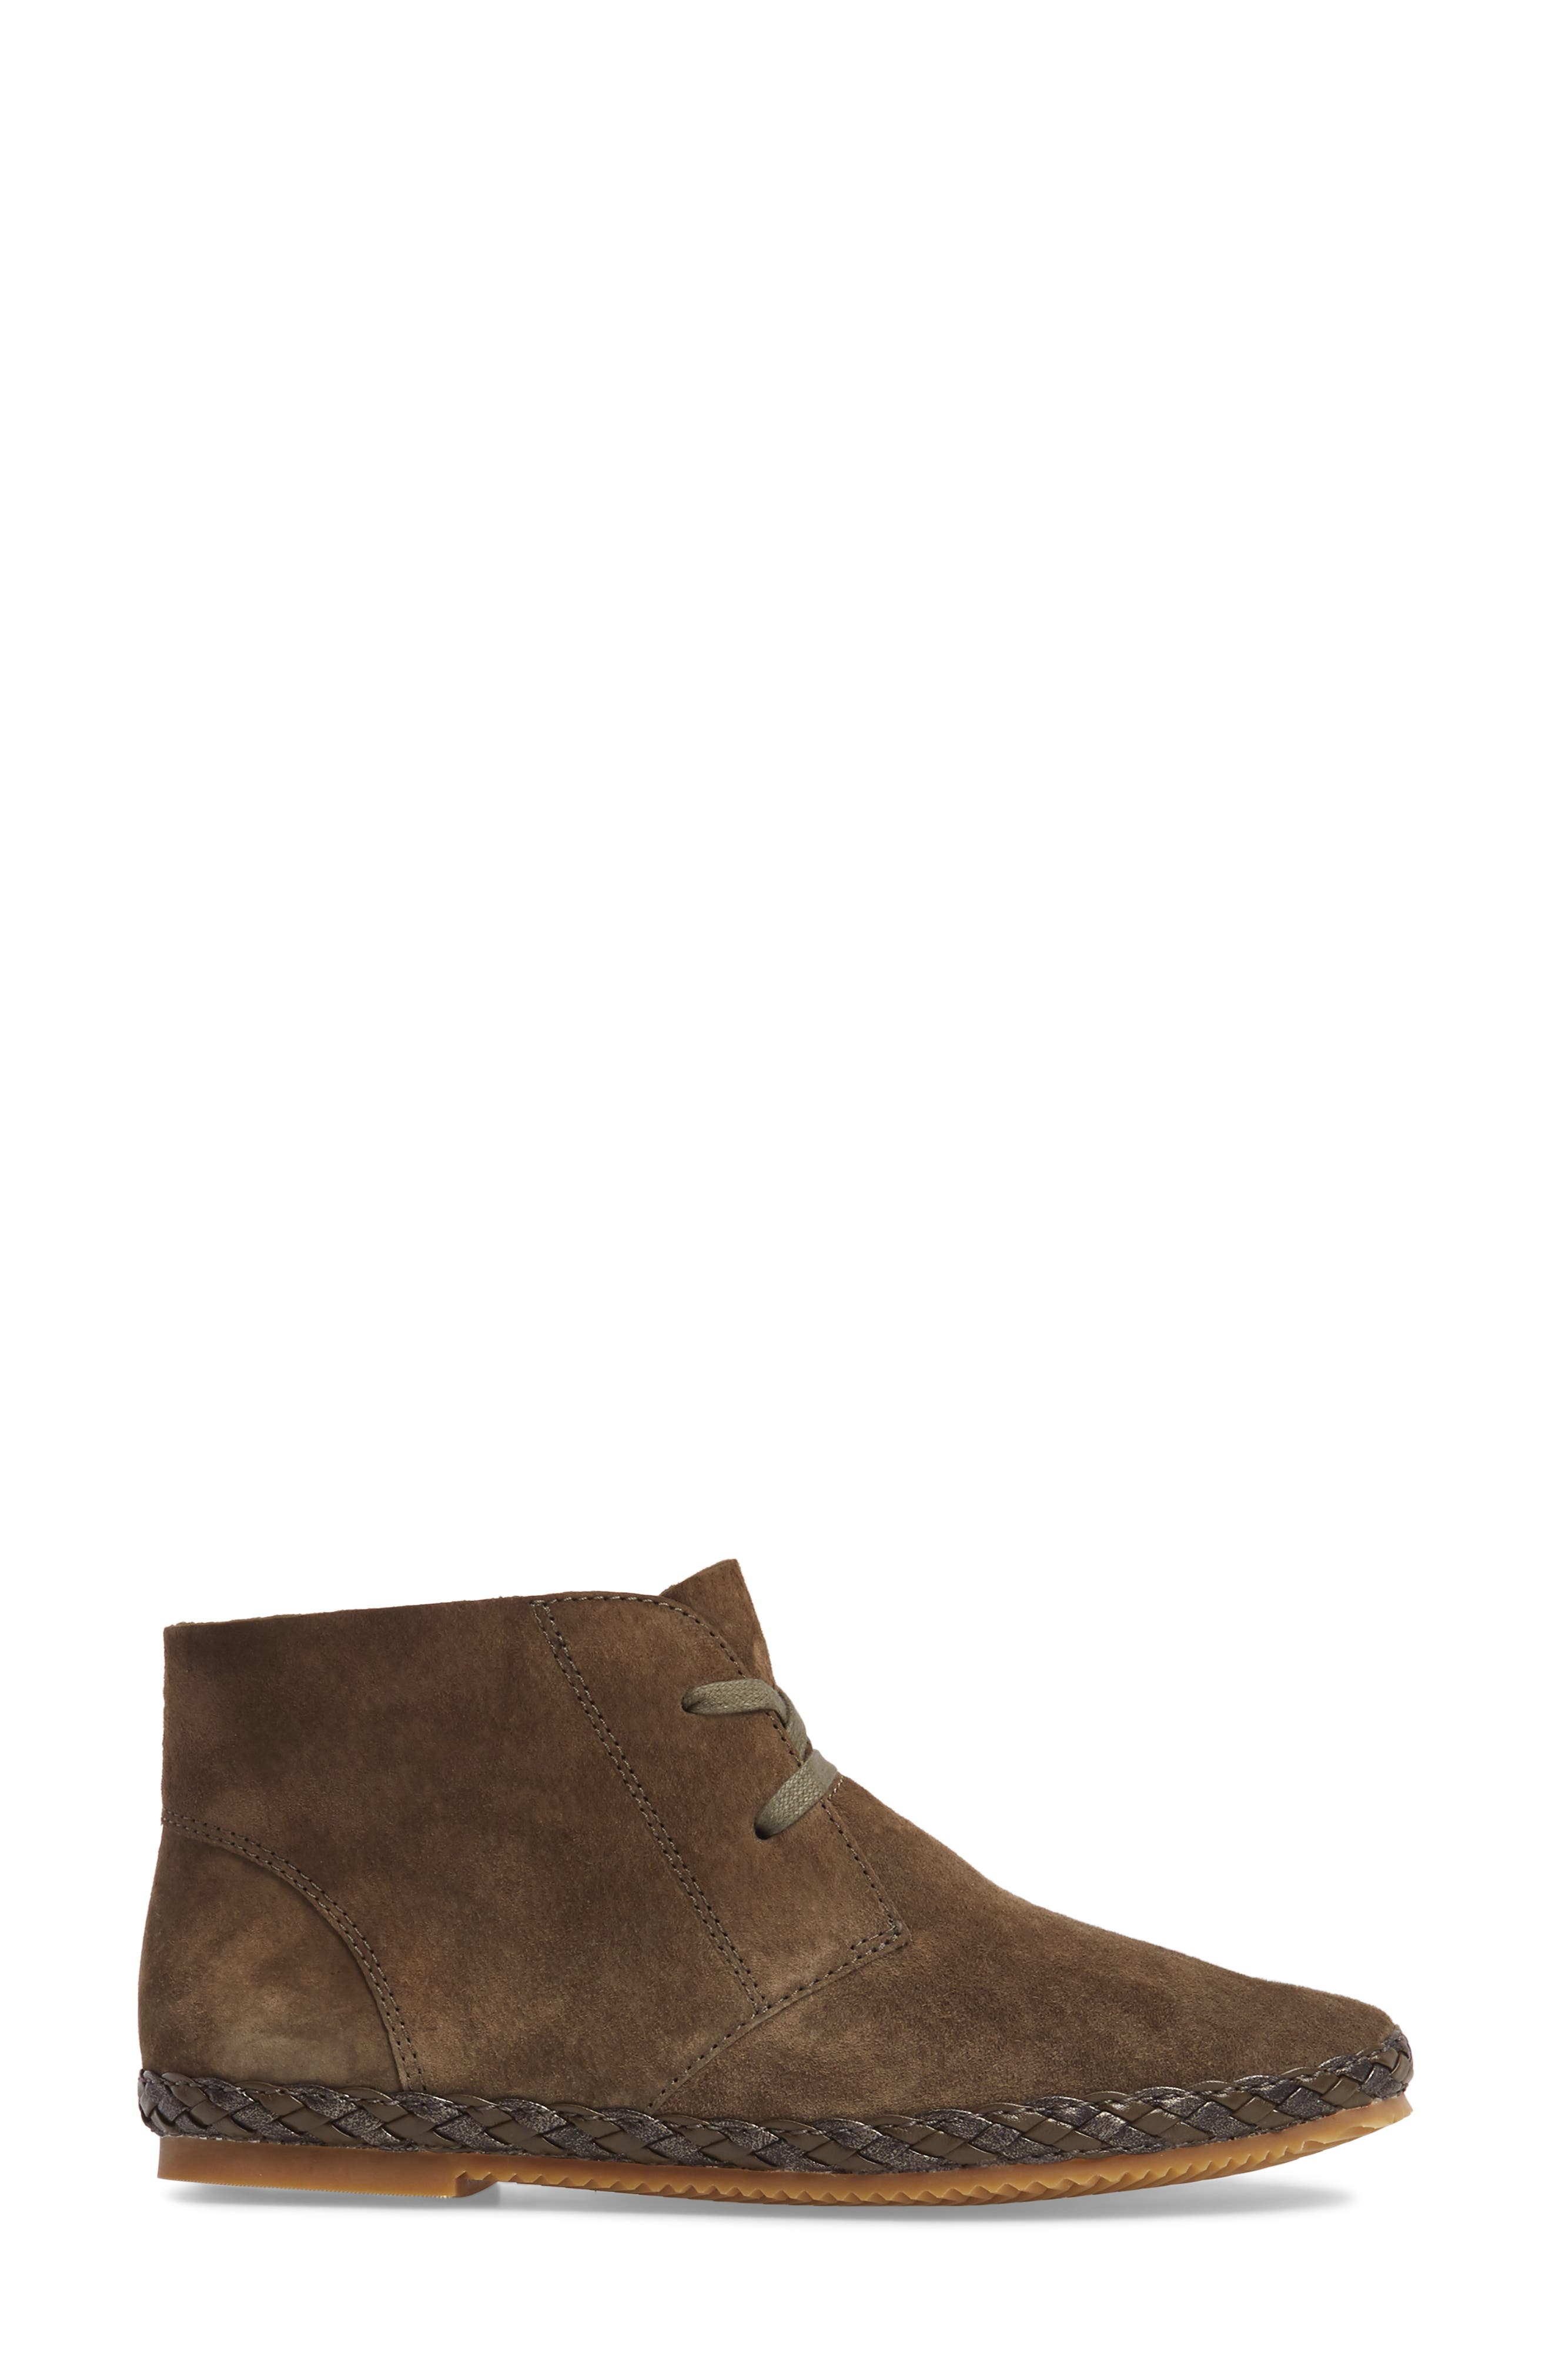 Addison Bootie,                             Alternate thumbnail 3, color,                             Olive Suede